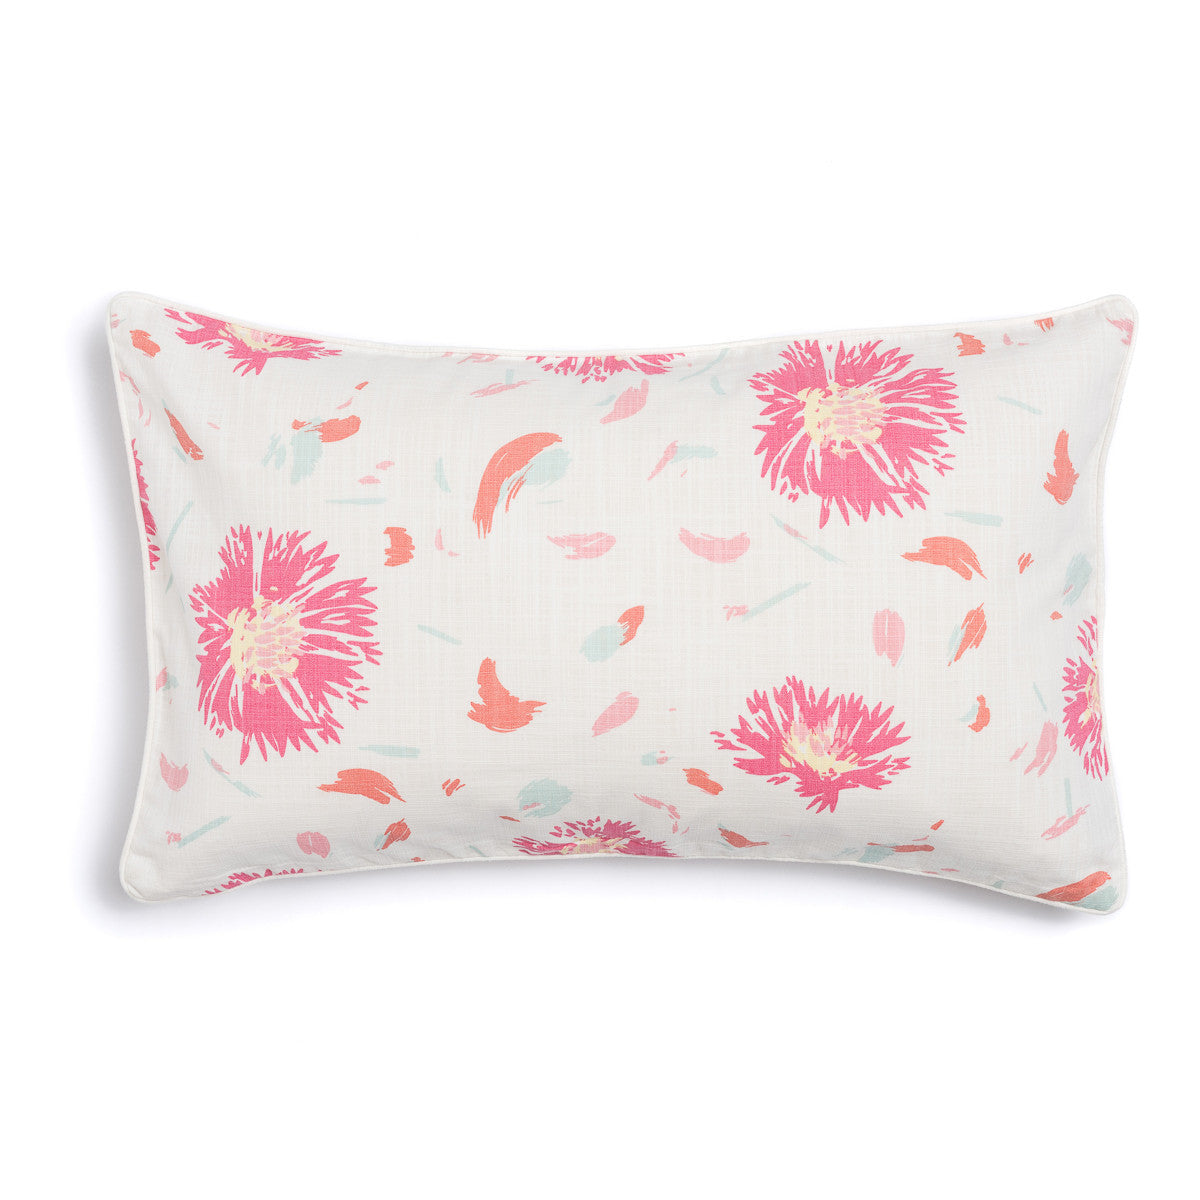 "Coral 16"" x 26"" Wildflower + Pickupstix Reversible Accent Pillow"